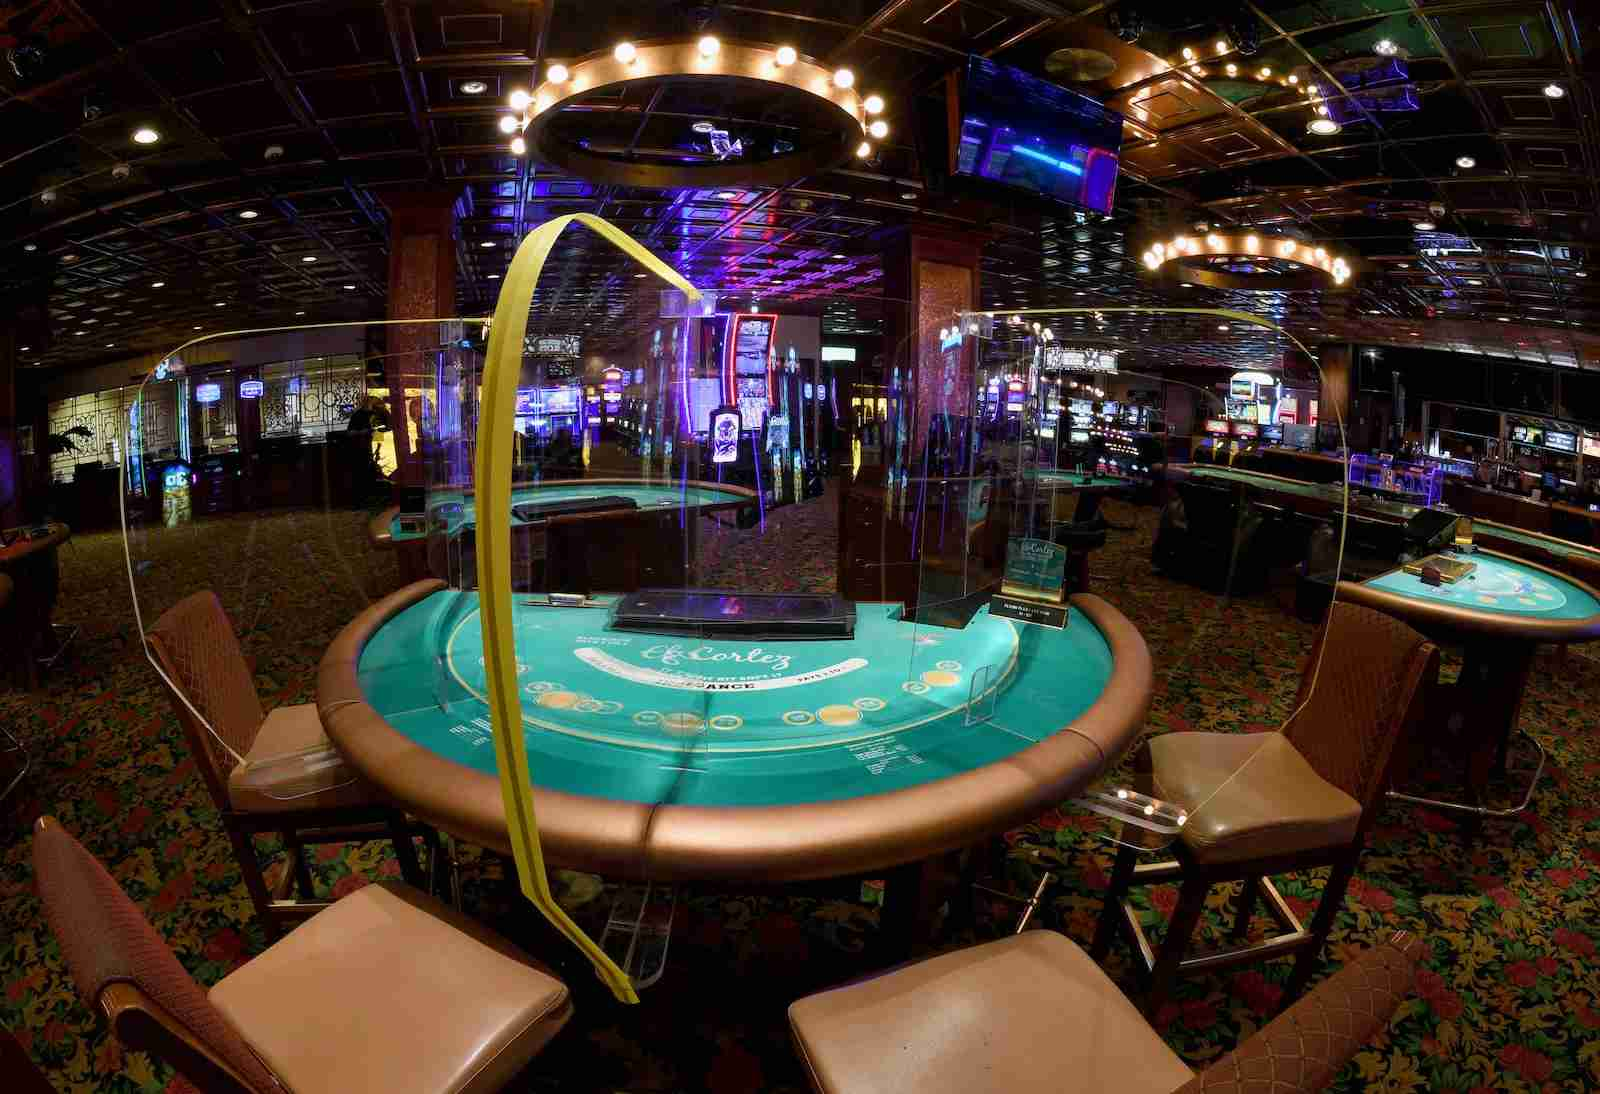 Some prototype Safety Shields being tested in Las Vegas Casinos. (Photo by Ethan Miller/Getty Images)